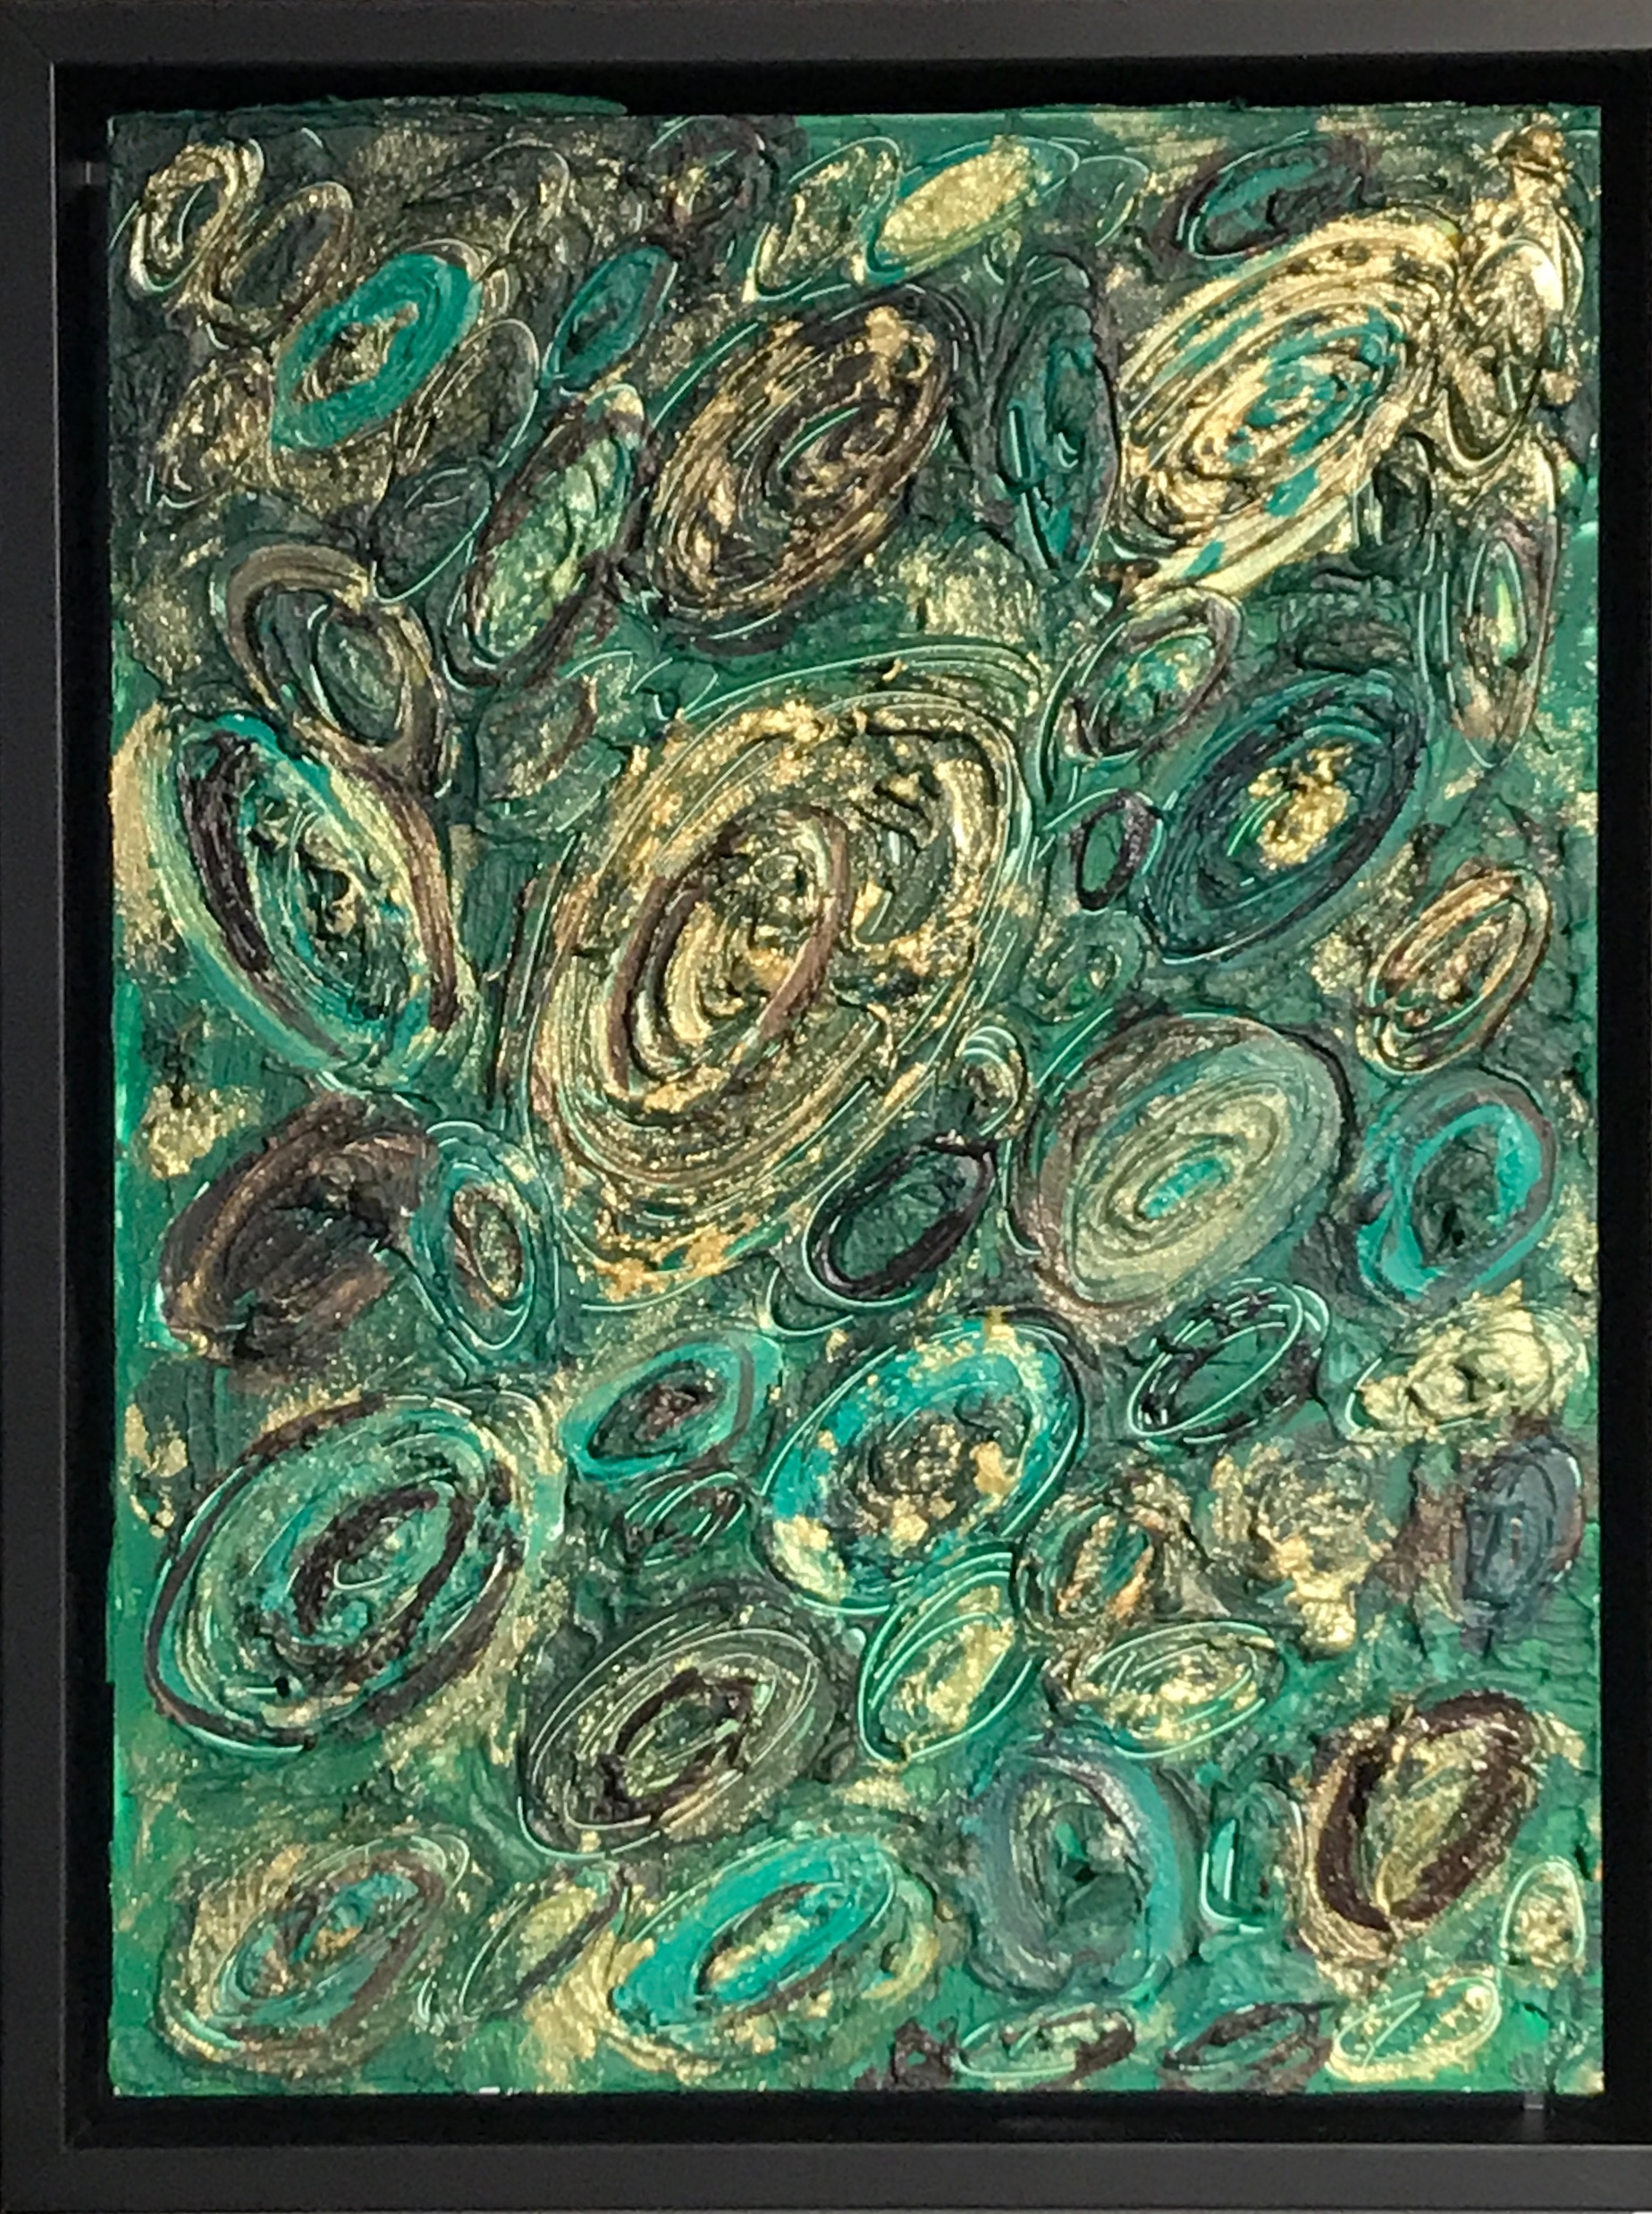 Malachite mini final framed y55rxt